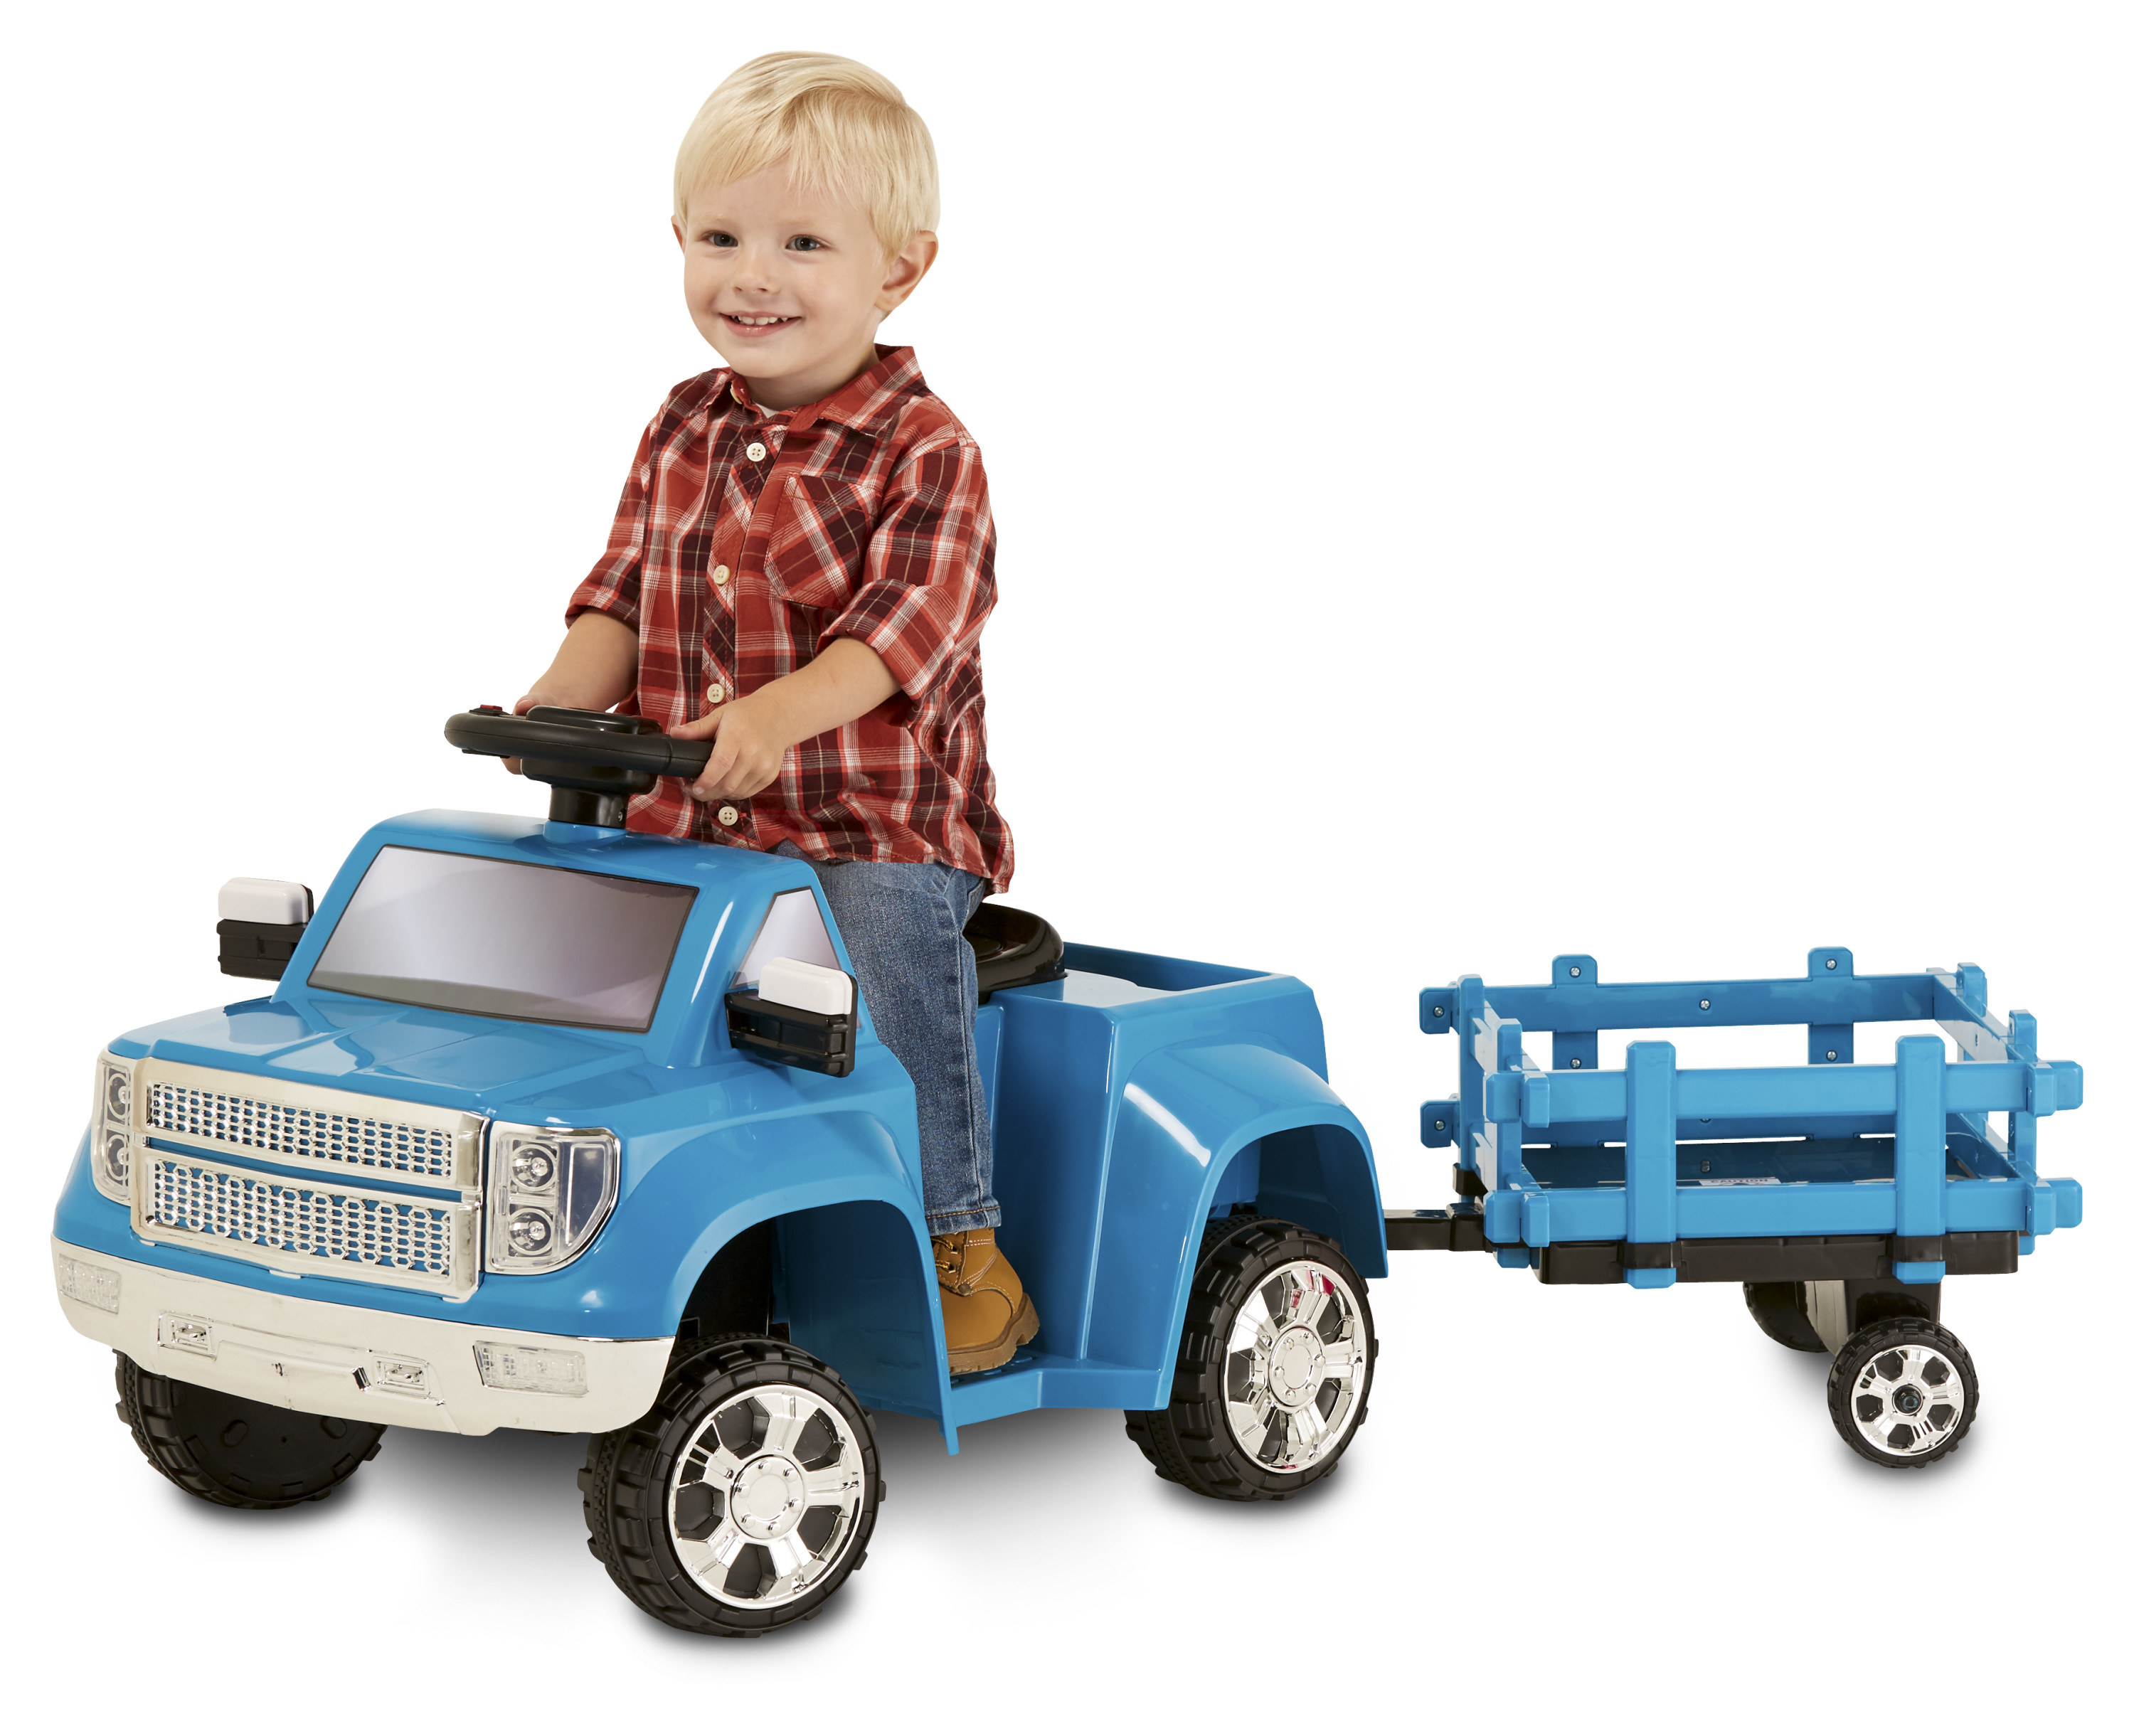 kid riding a blue toy truck with a pretend trailer behind it